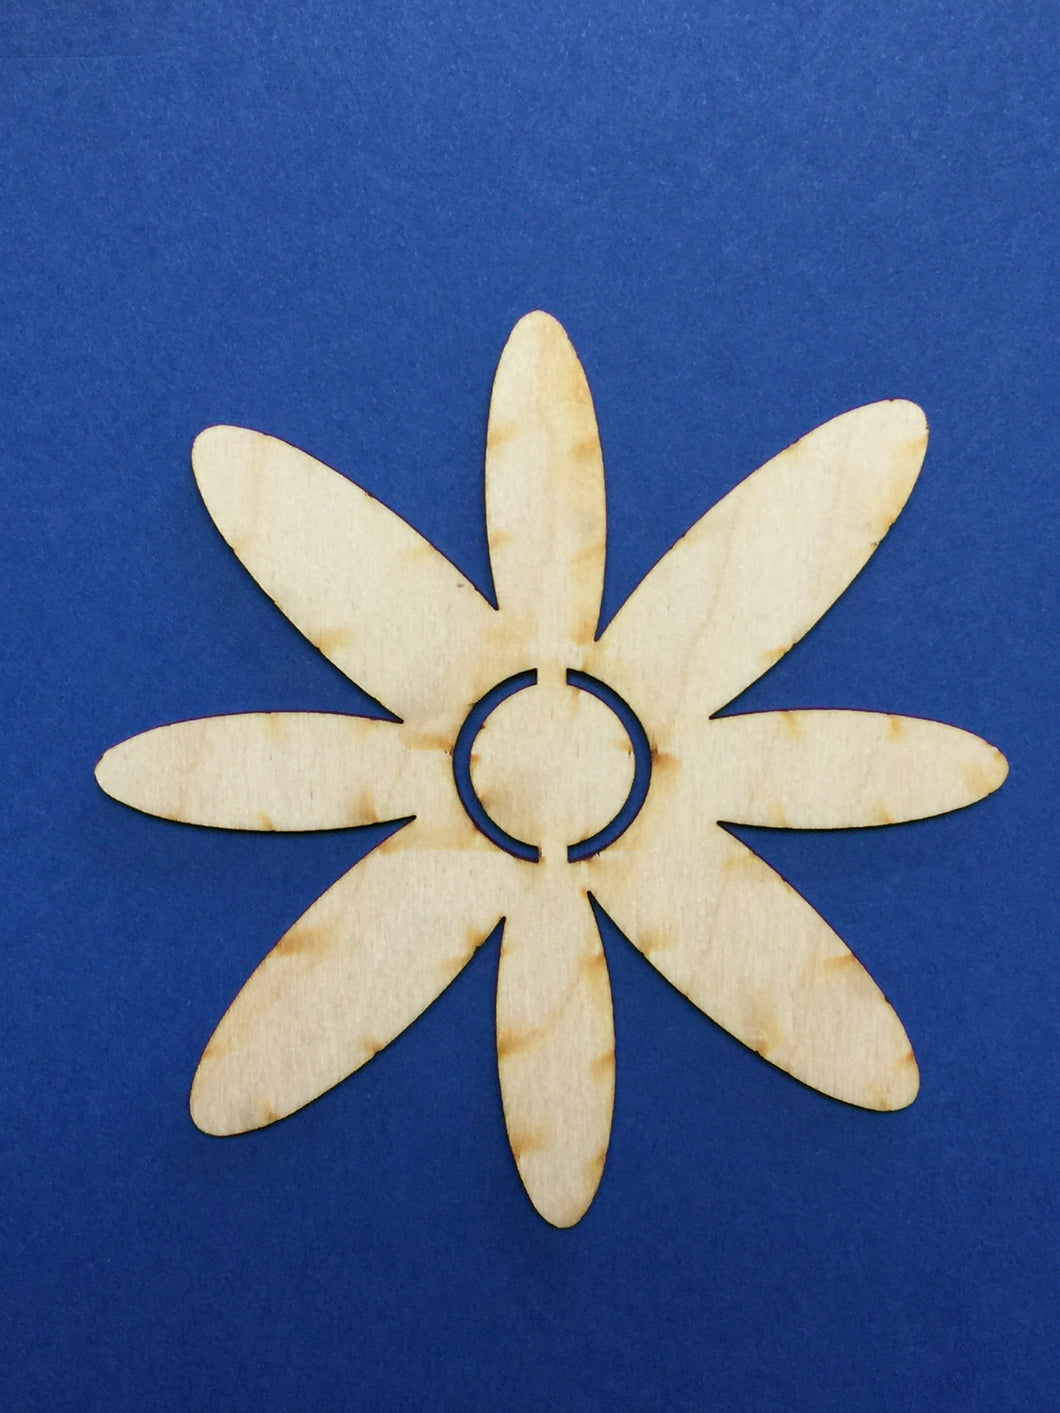 The Adjustable Sign - Daisy Flower